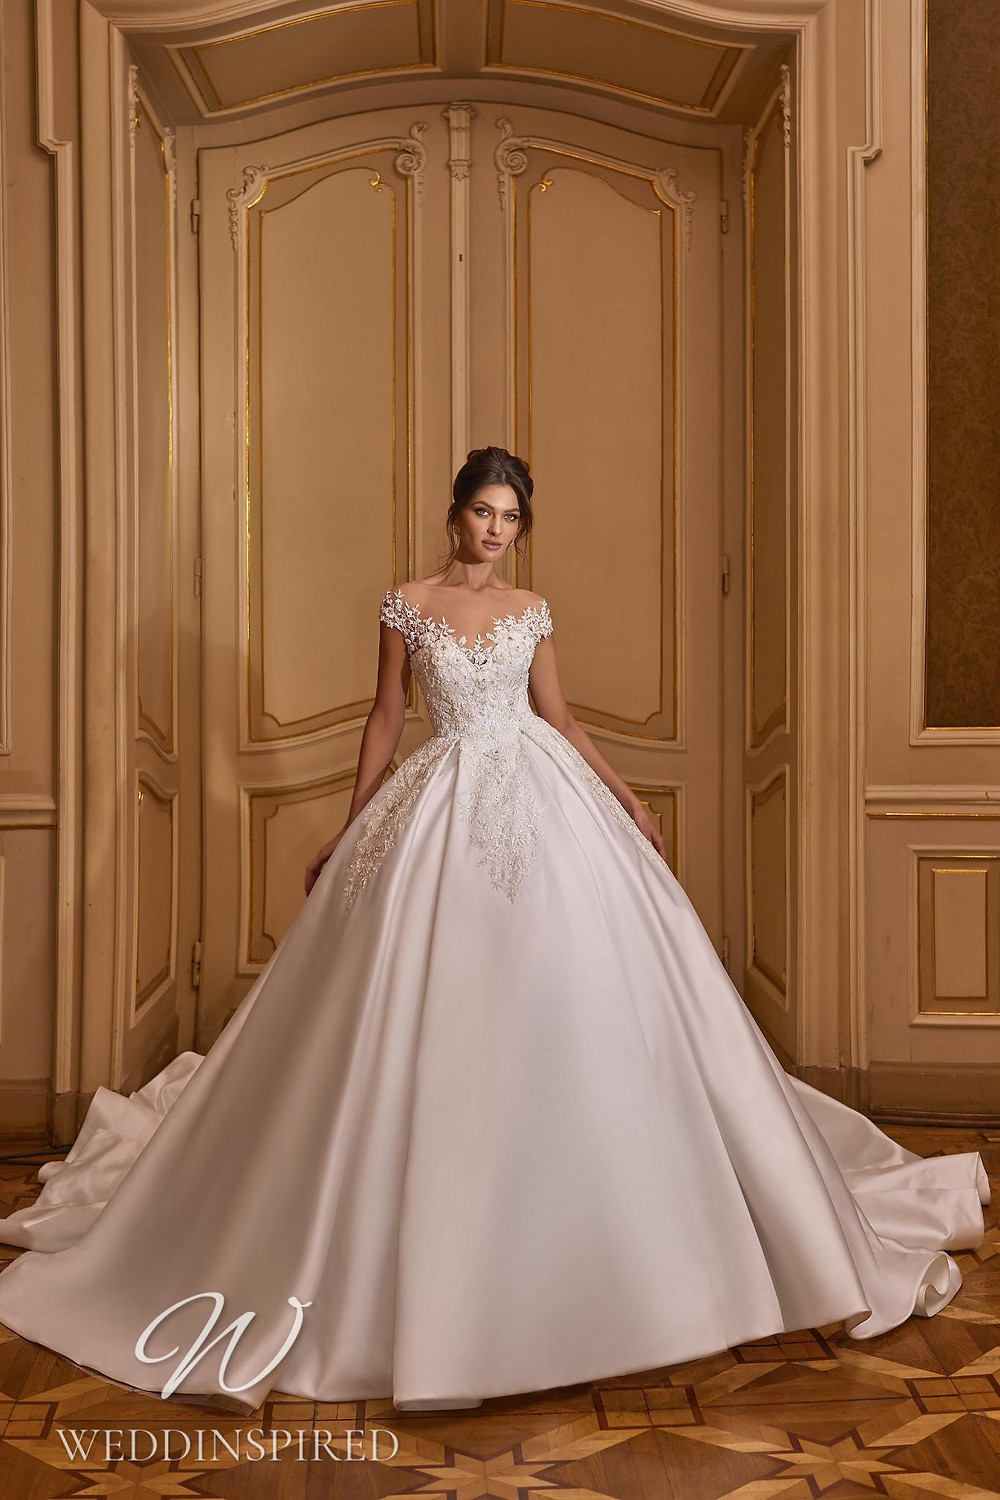 A Ricca Sposa 2022 off the shoulder lace and satin princess wedding dress